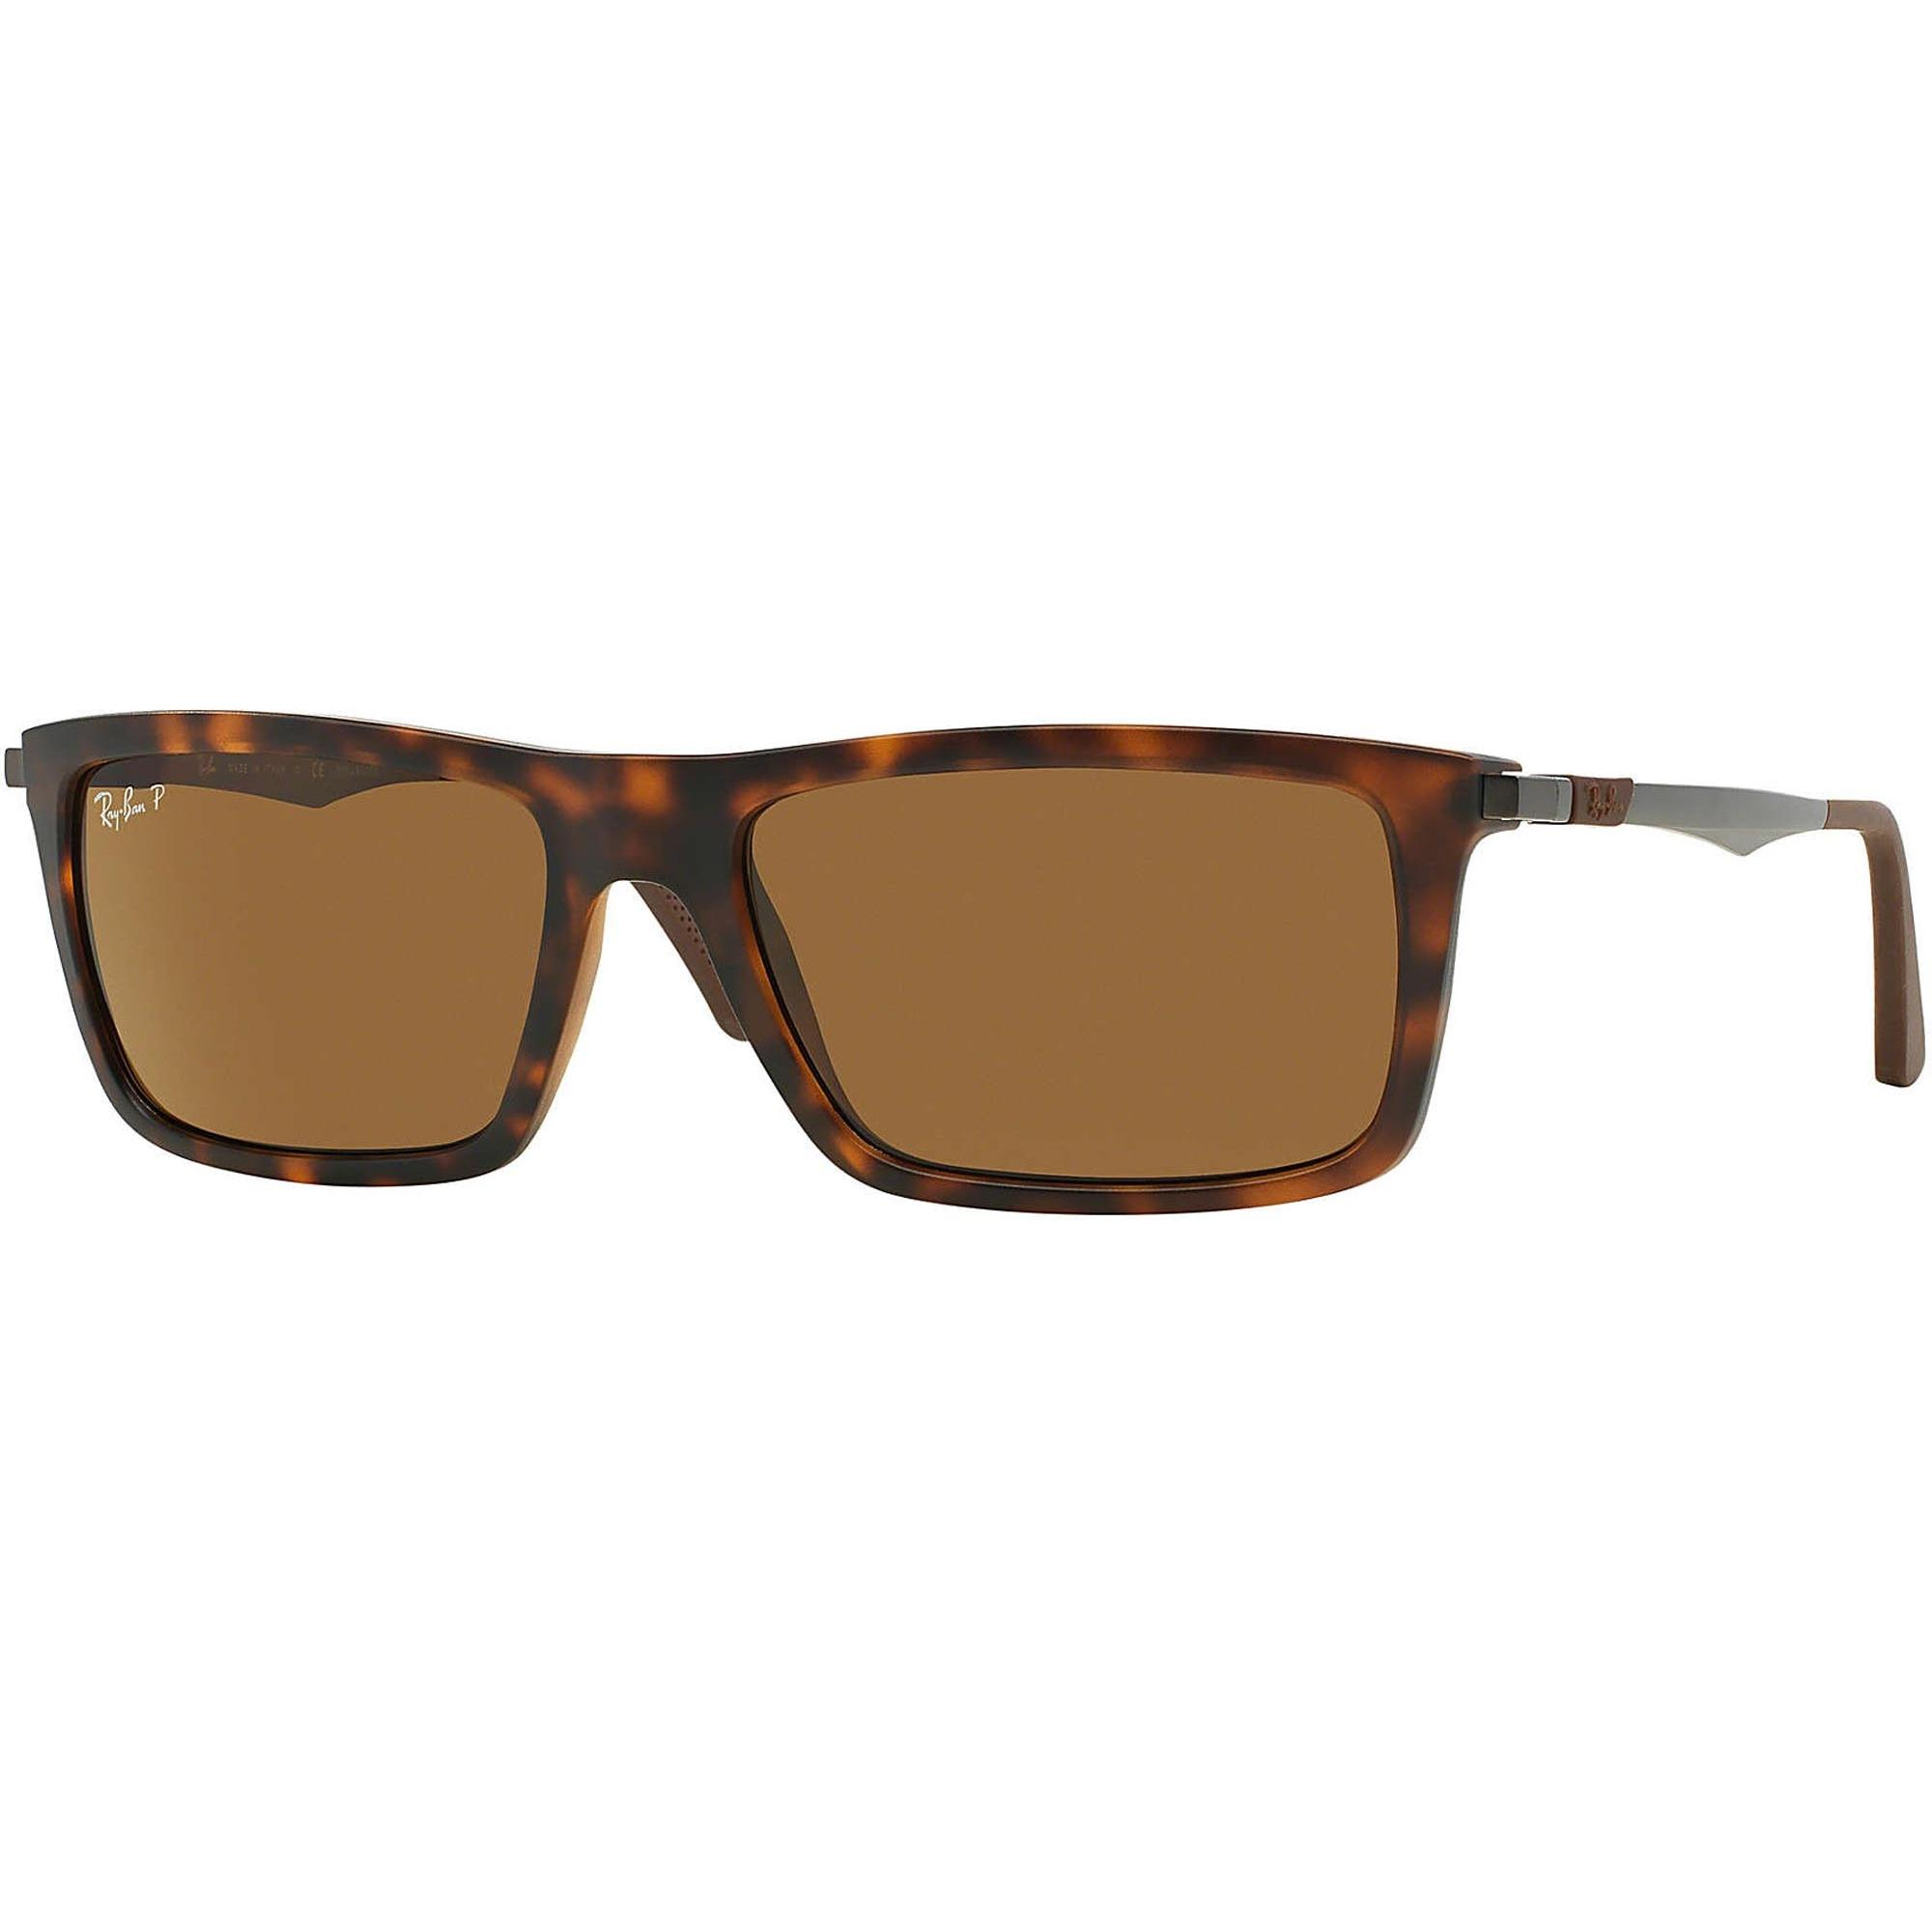 1e9a476723 Ray-Ban Tortoise Rb4214 Sunglasses - Brown Classic B-15 Lenses for ...